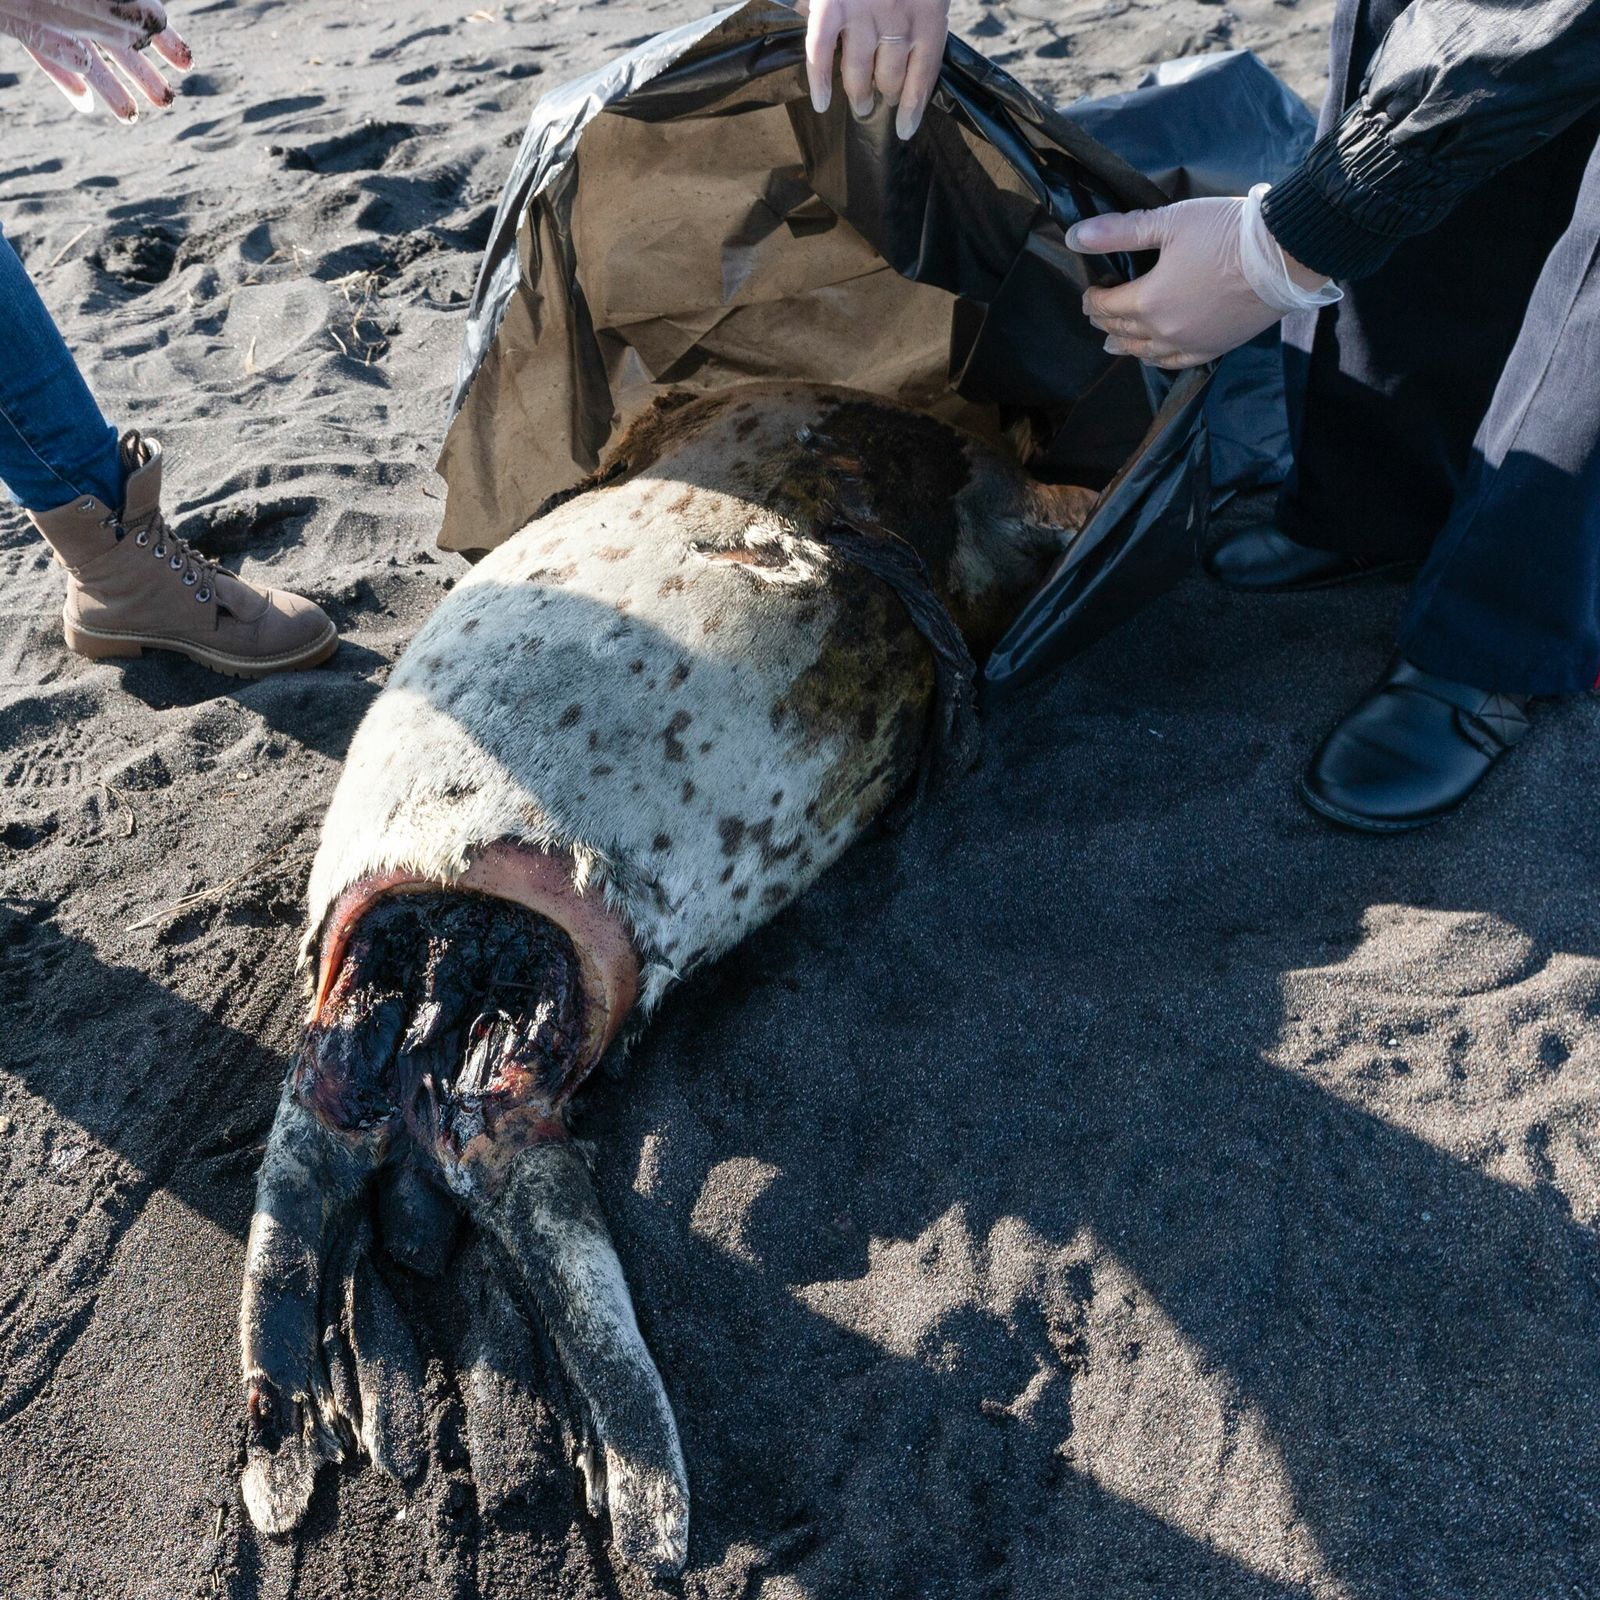 A dead spotted seal washed up on Khalaktyrskiy Beach, in Russia's Far East, along with mounds ...